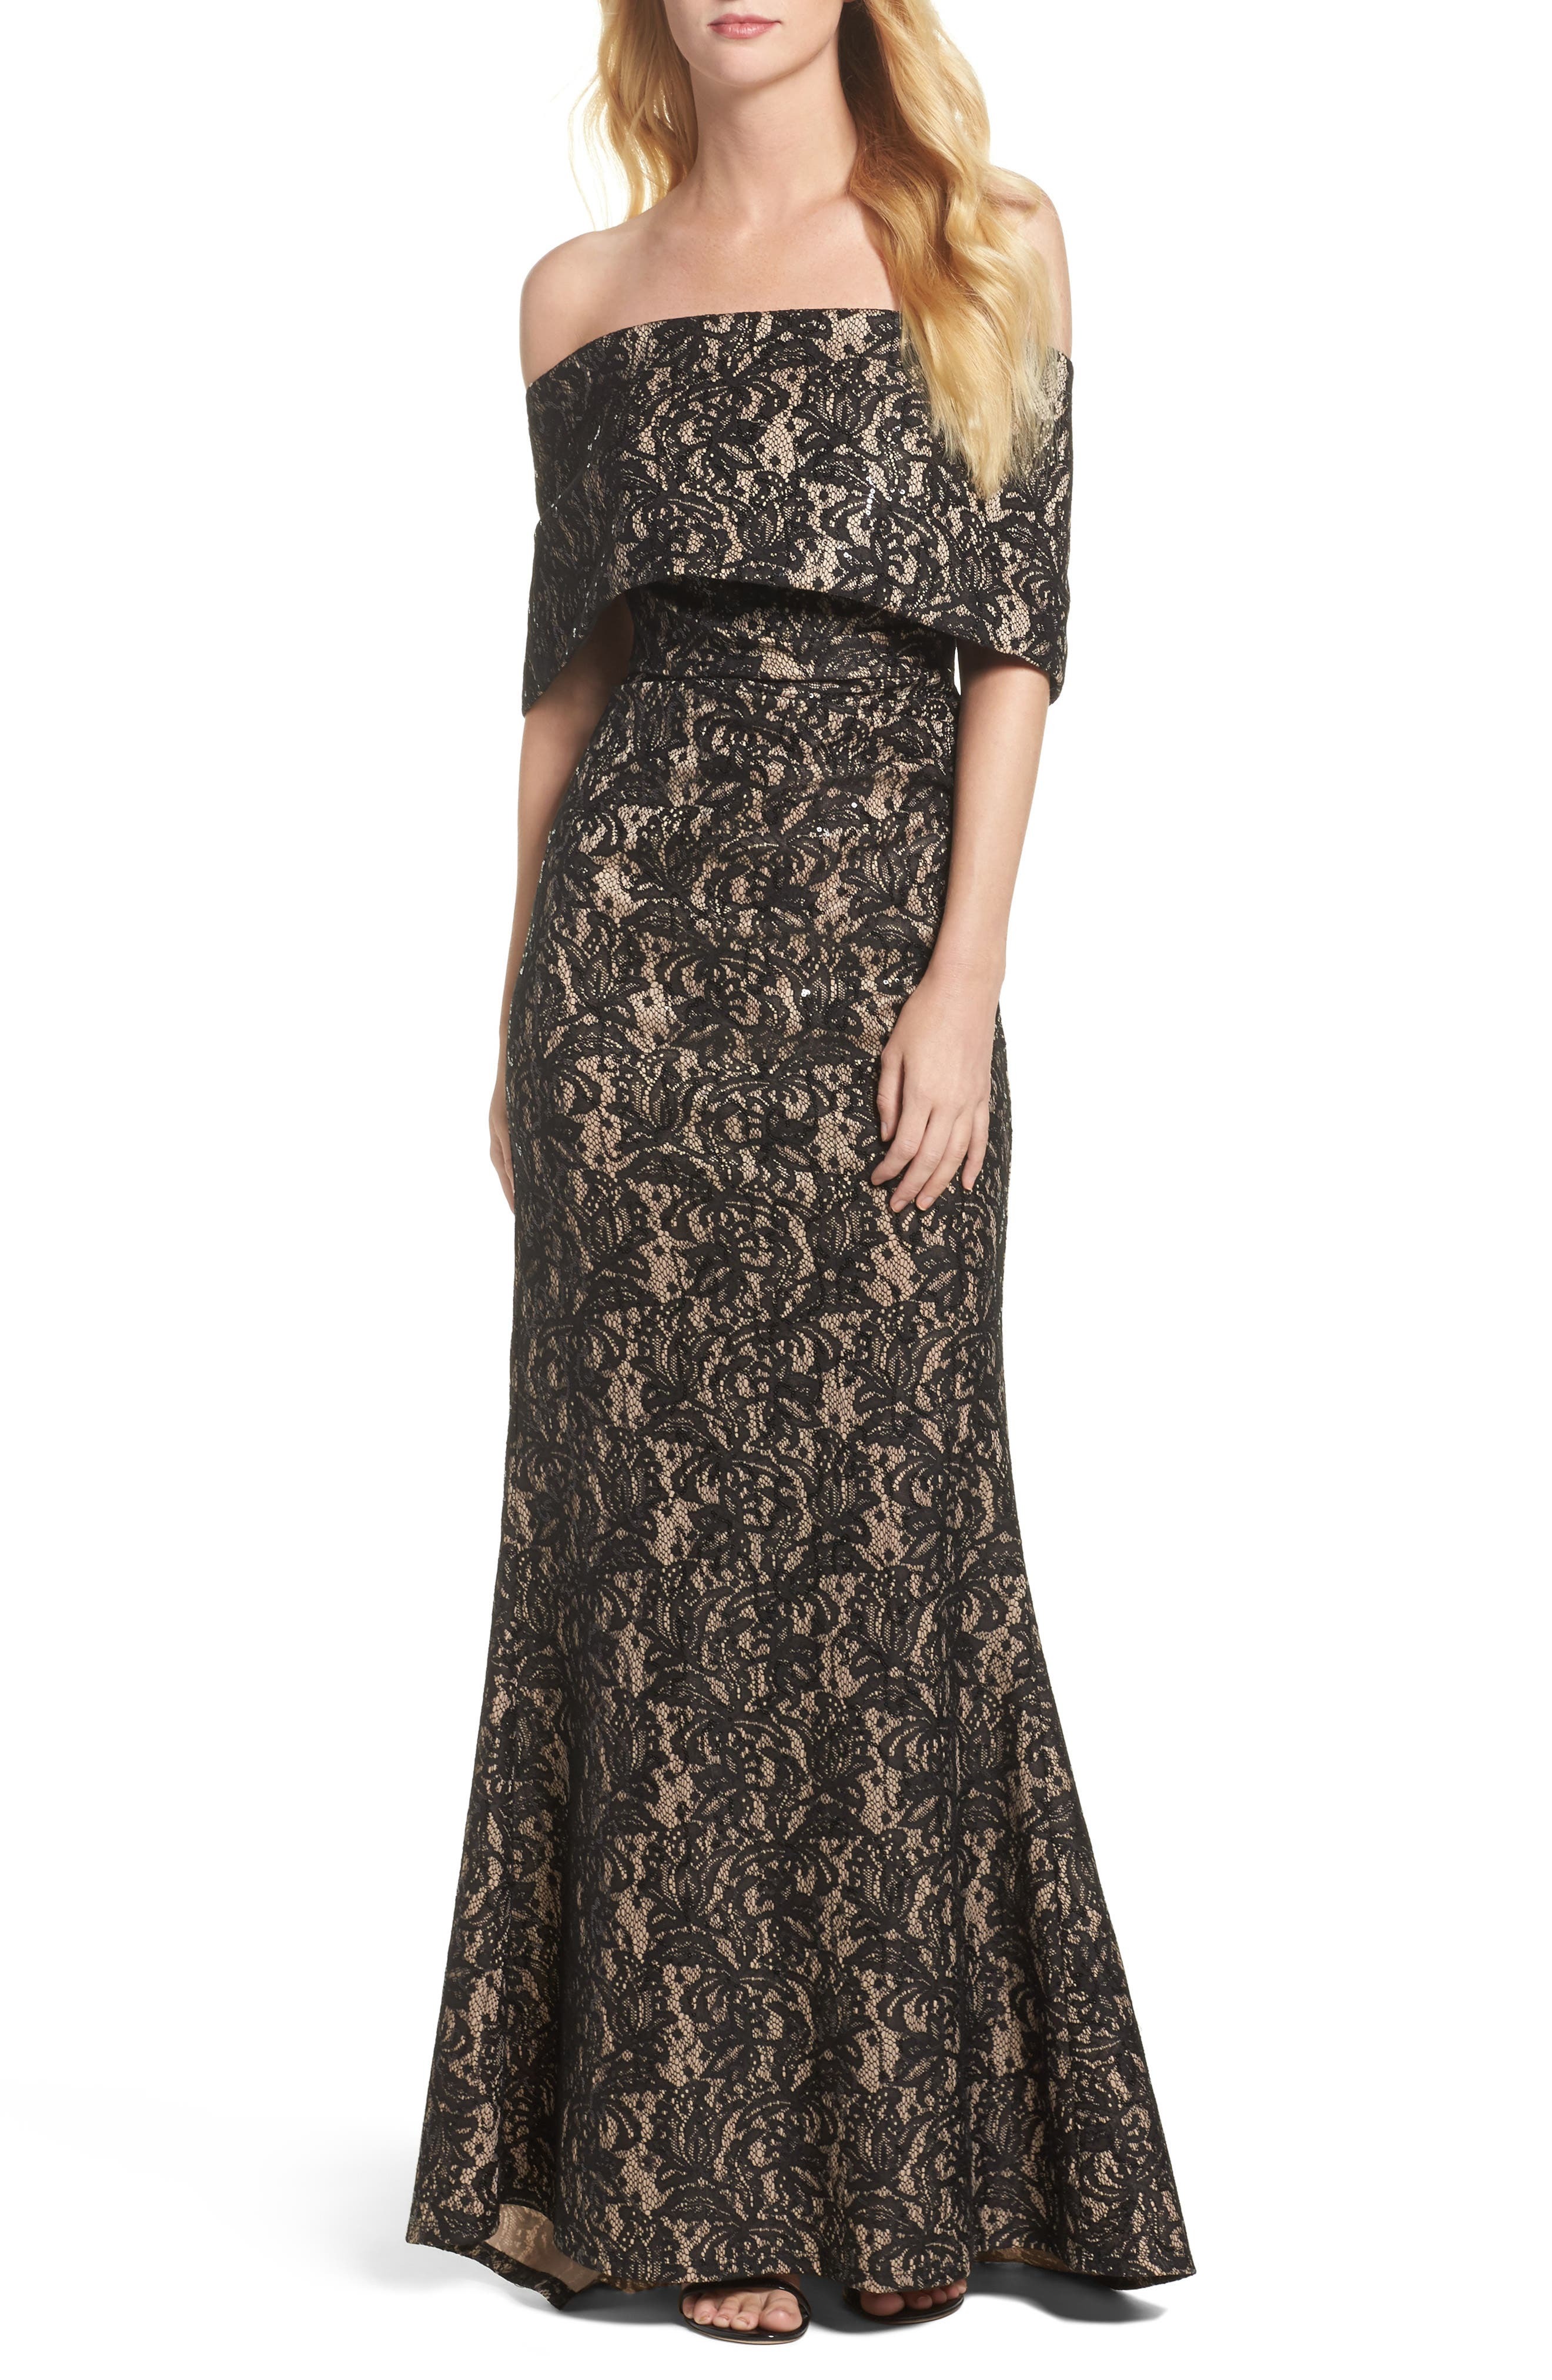 VINCE CAMUTO Sequin Off the Shoulder Gown, Main, color, BLACK/ TAN